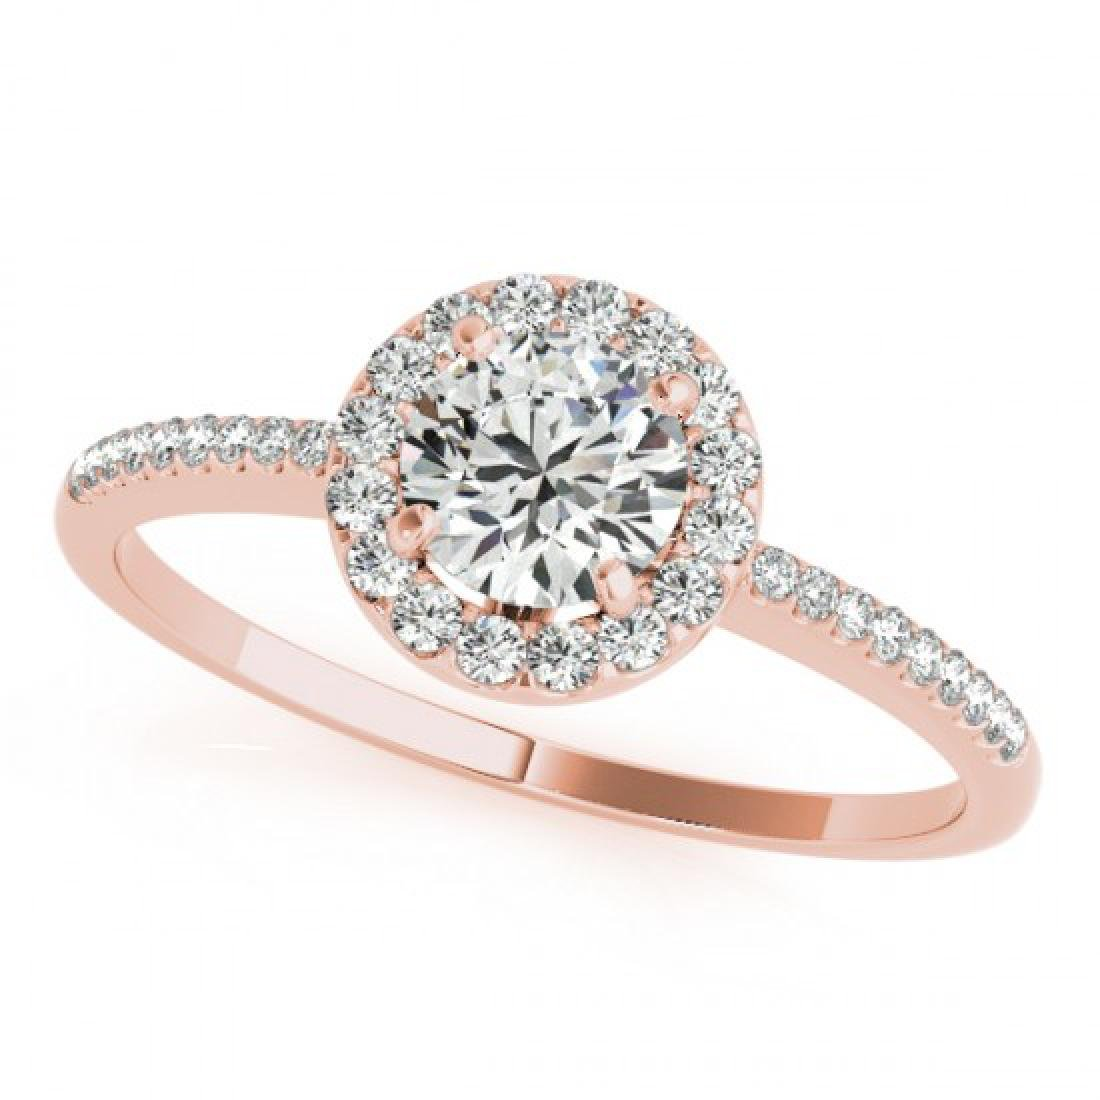 1.2 CTW Certified VS/SI Diamond Solitaire Halo Ring 14K